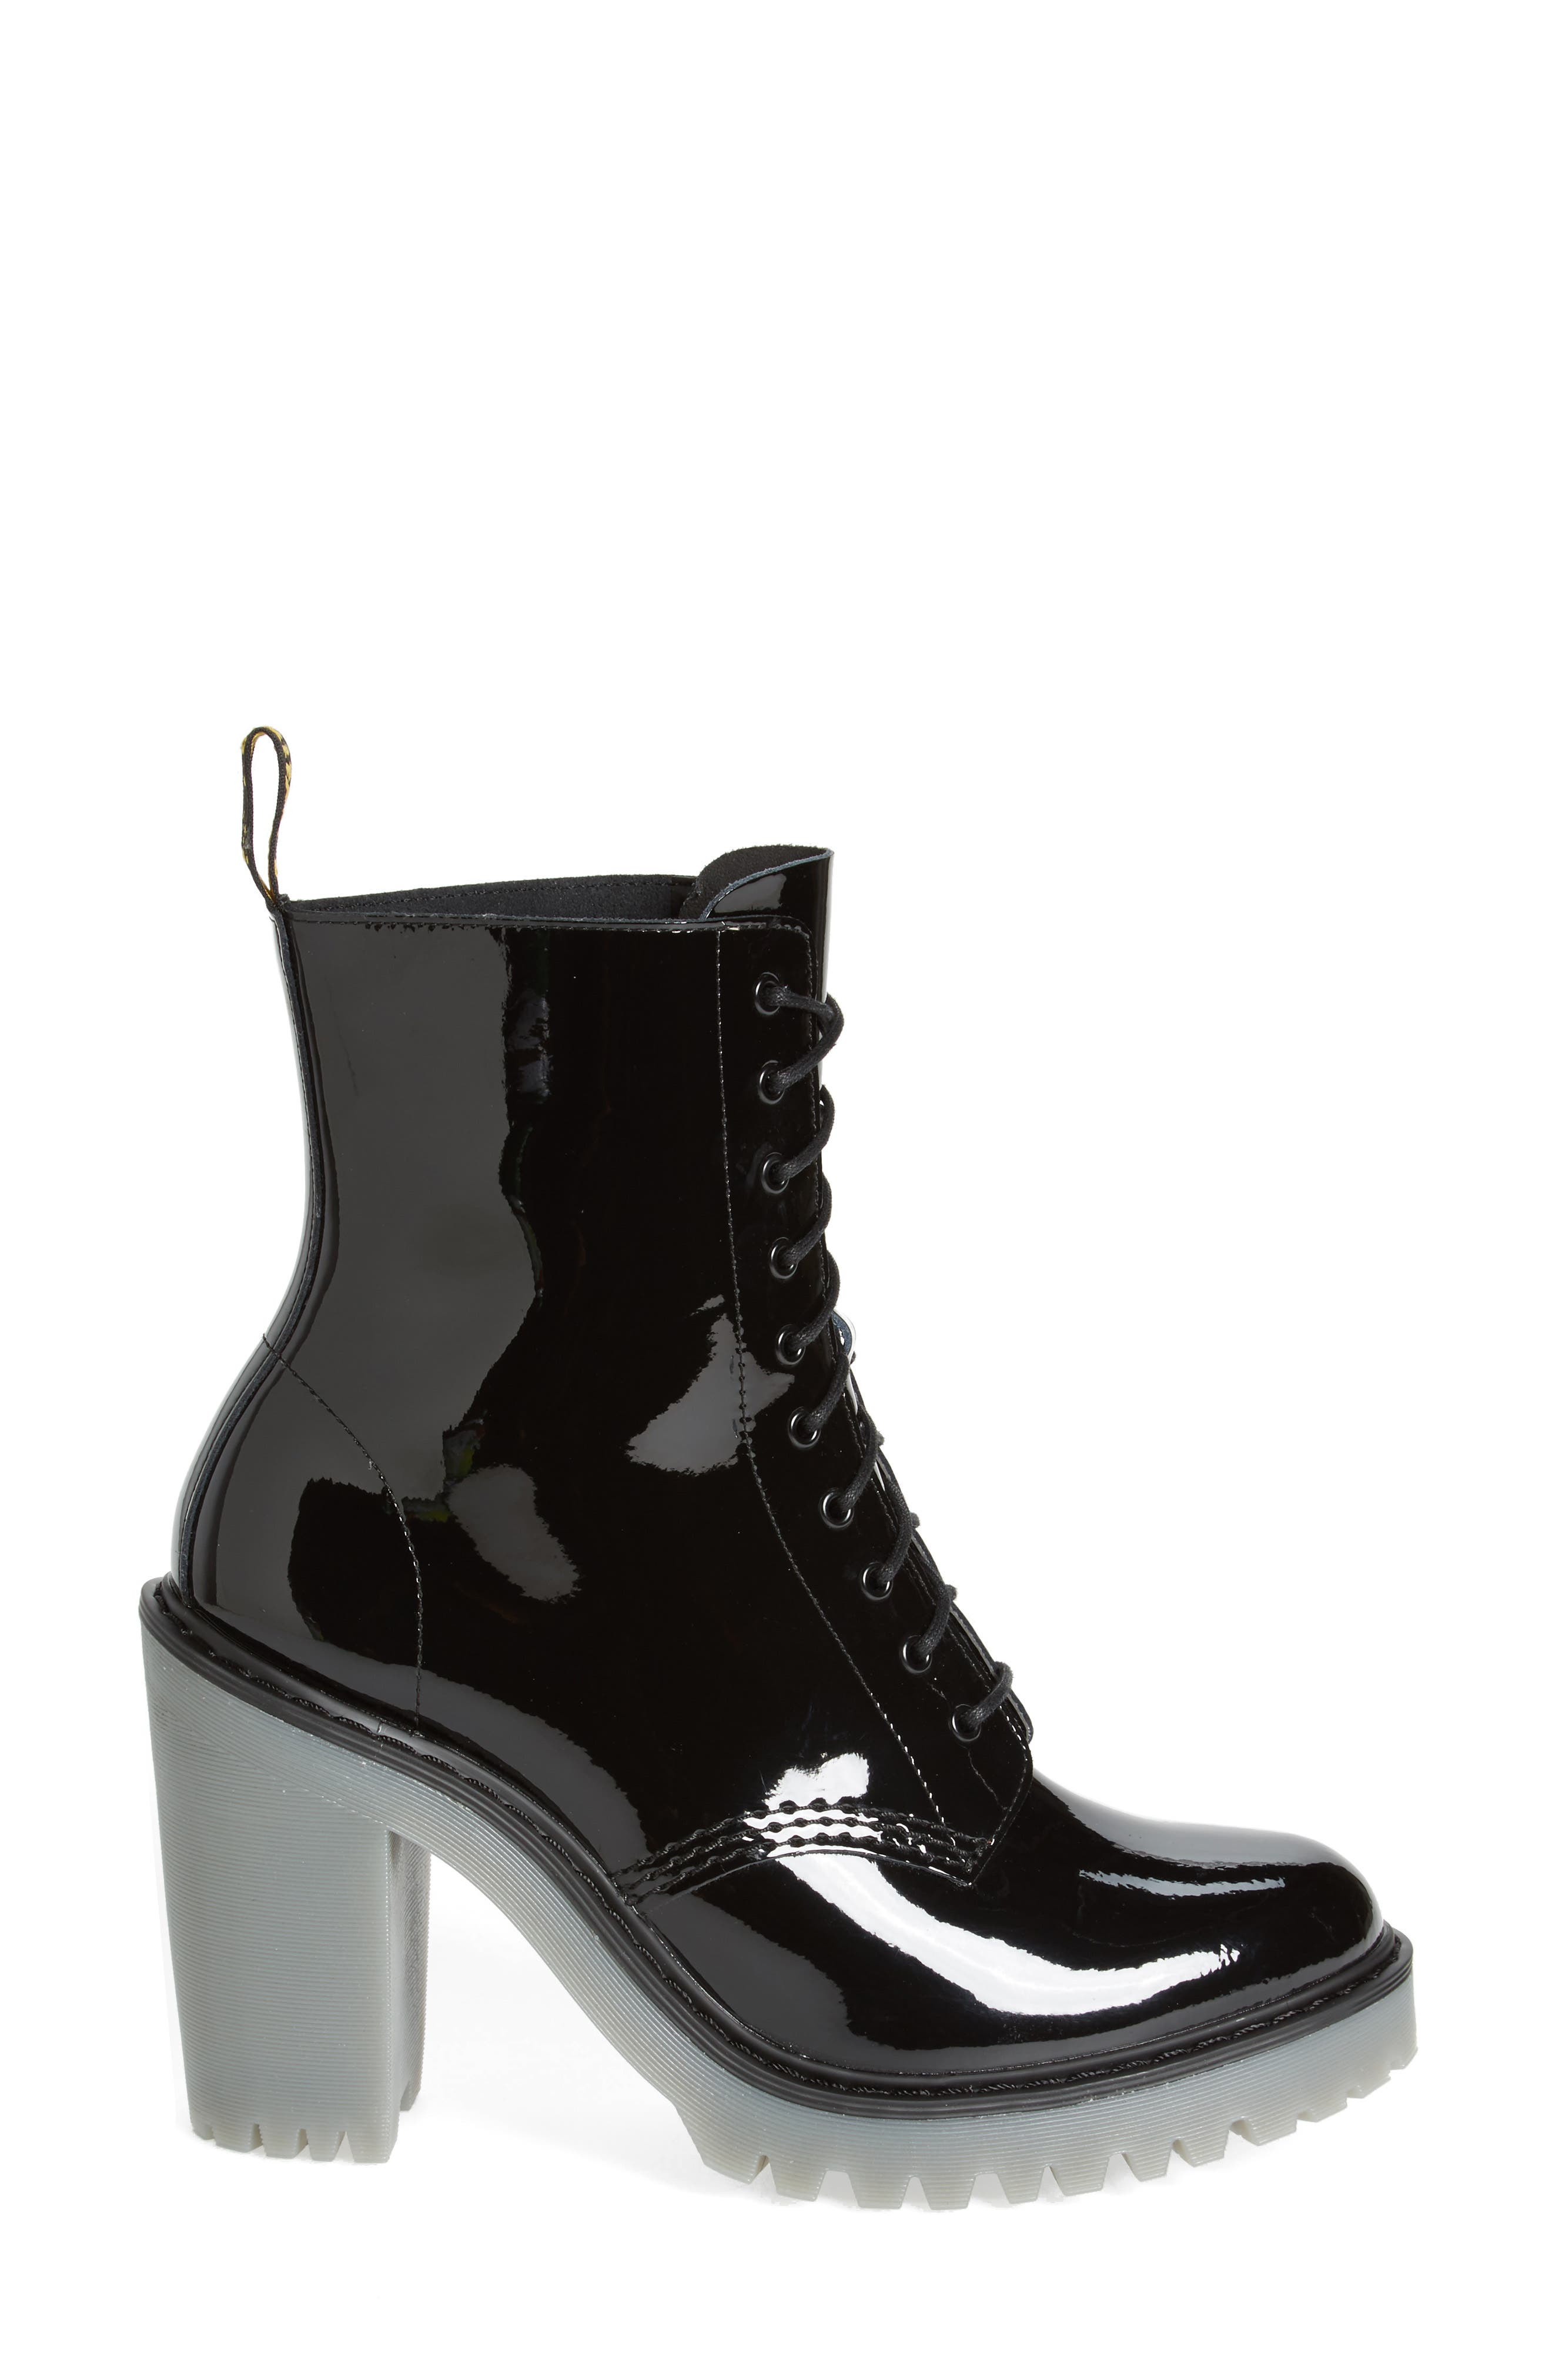 Kendra Heeled Bootie,                             Alternate thumbnail 3, color,                             Black Patent Leather